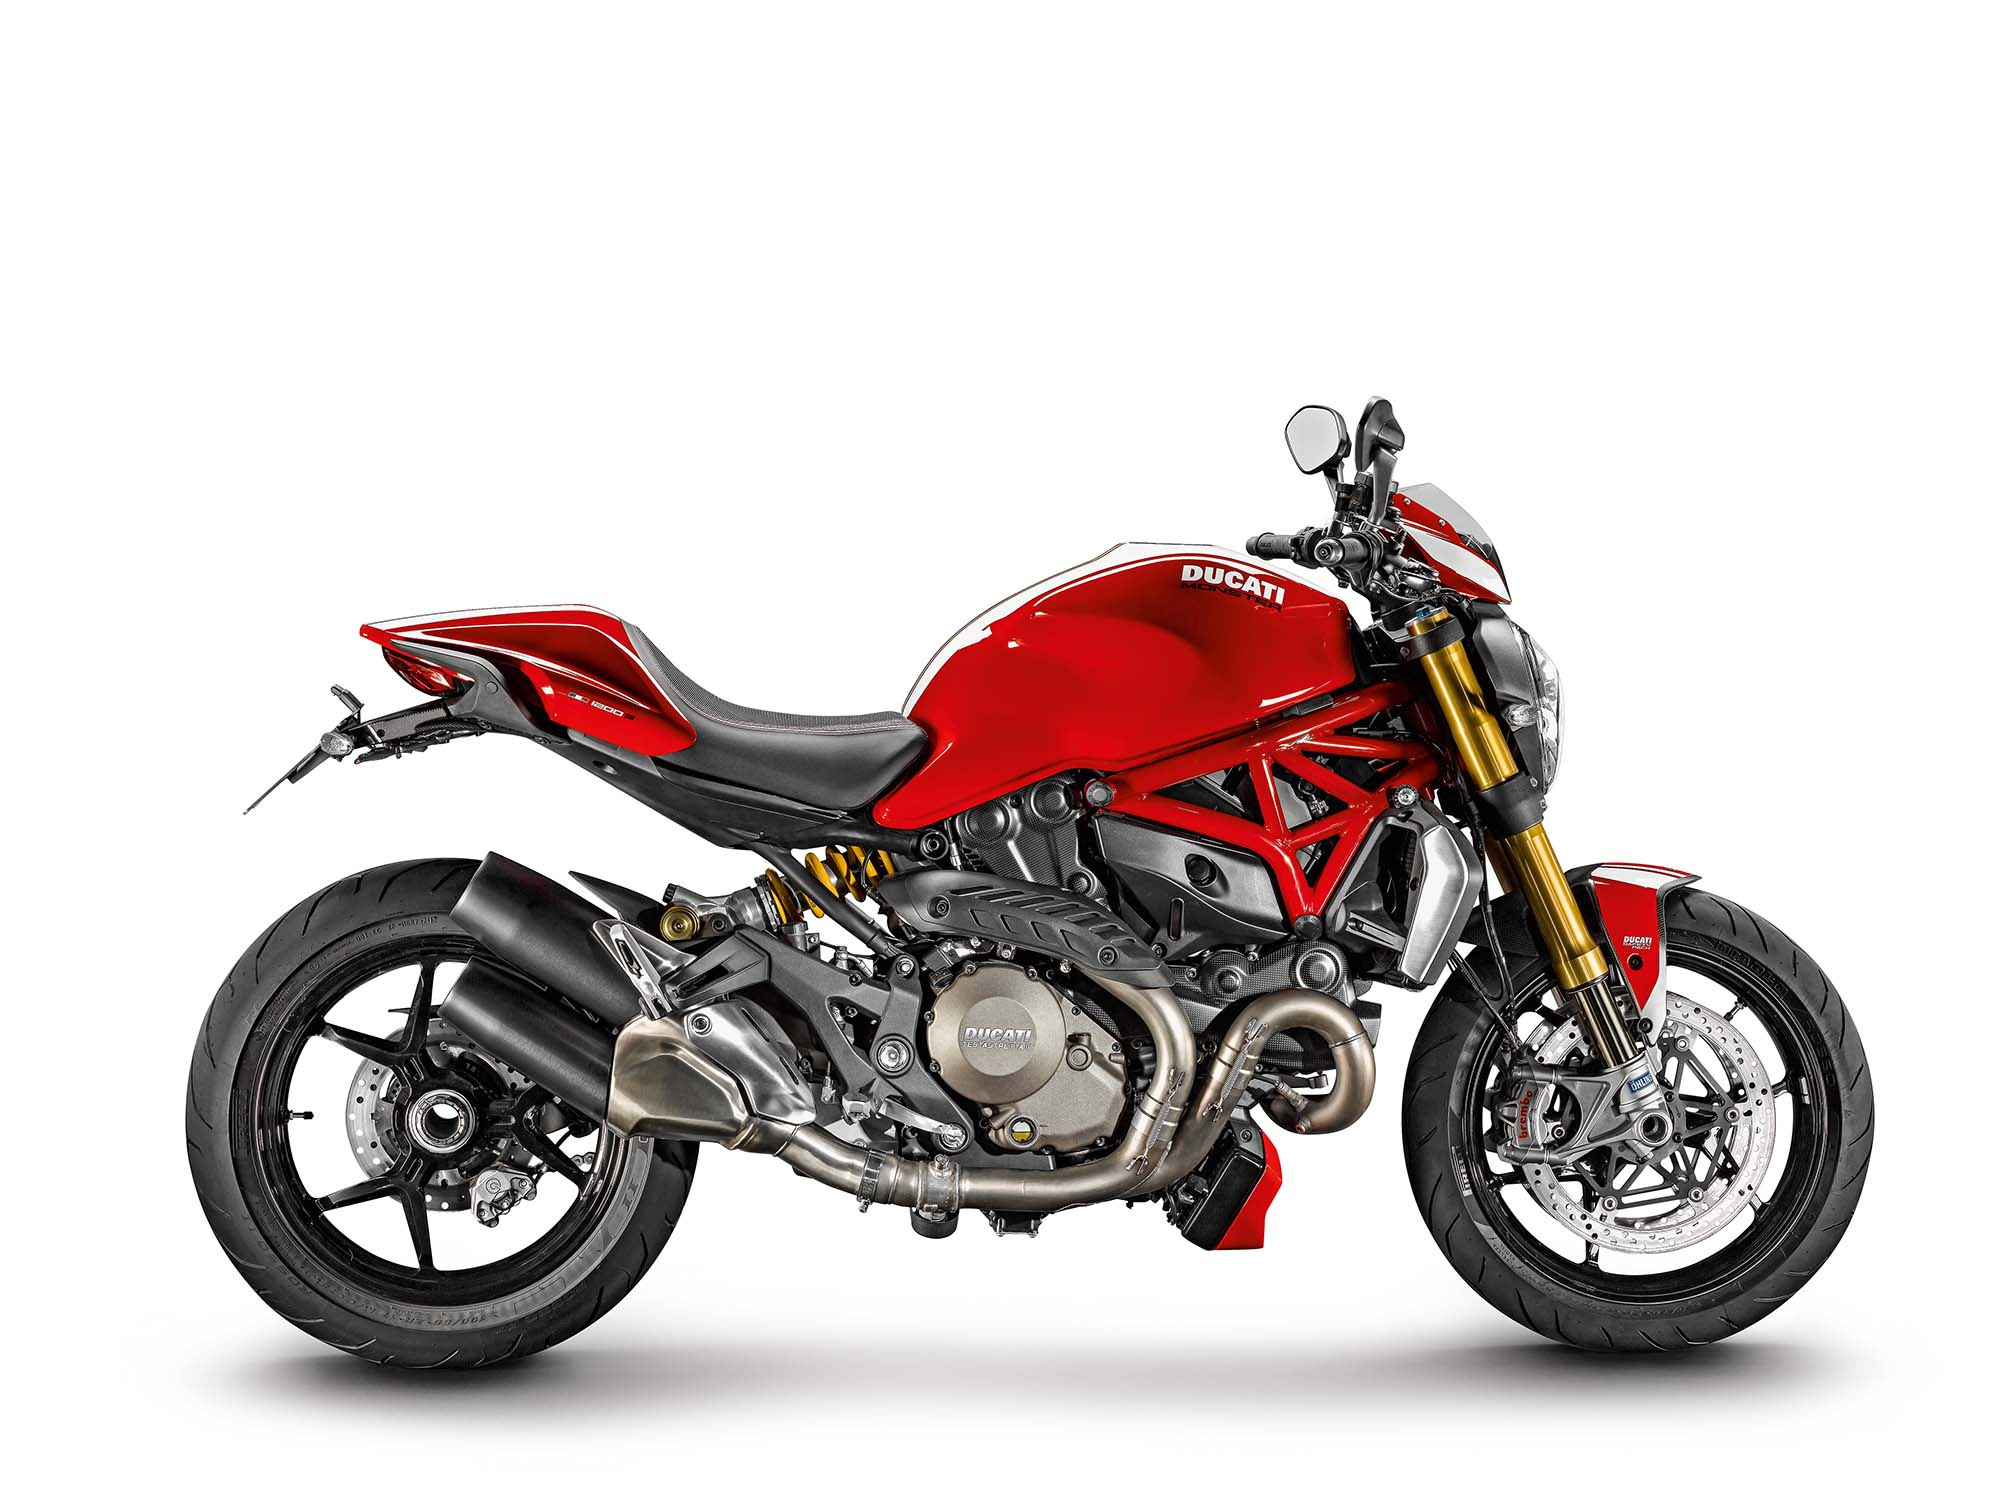 Top Speed Of Ducati Monster S